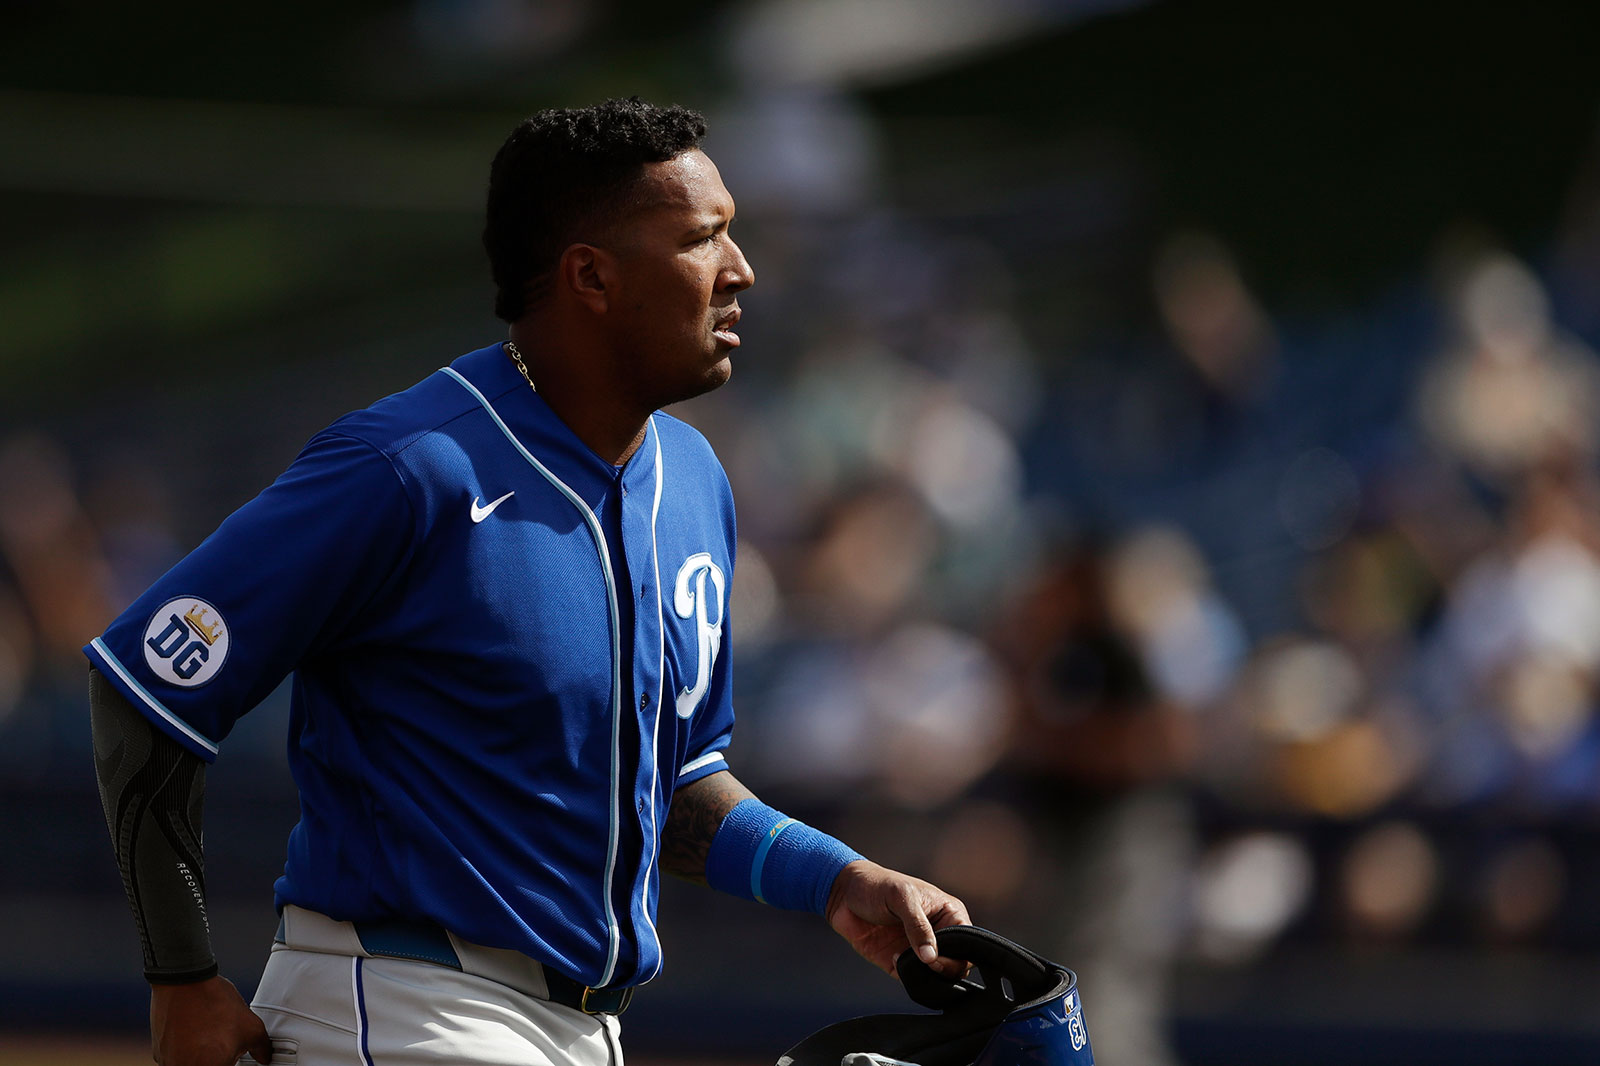 Kansas City Royals catcher Salvador Perez walks towards the dugout during a spring training game in Phoenix on February 27.